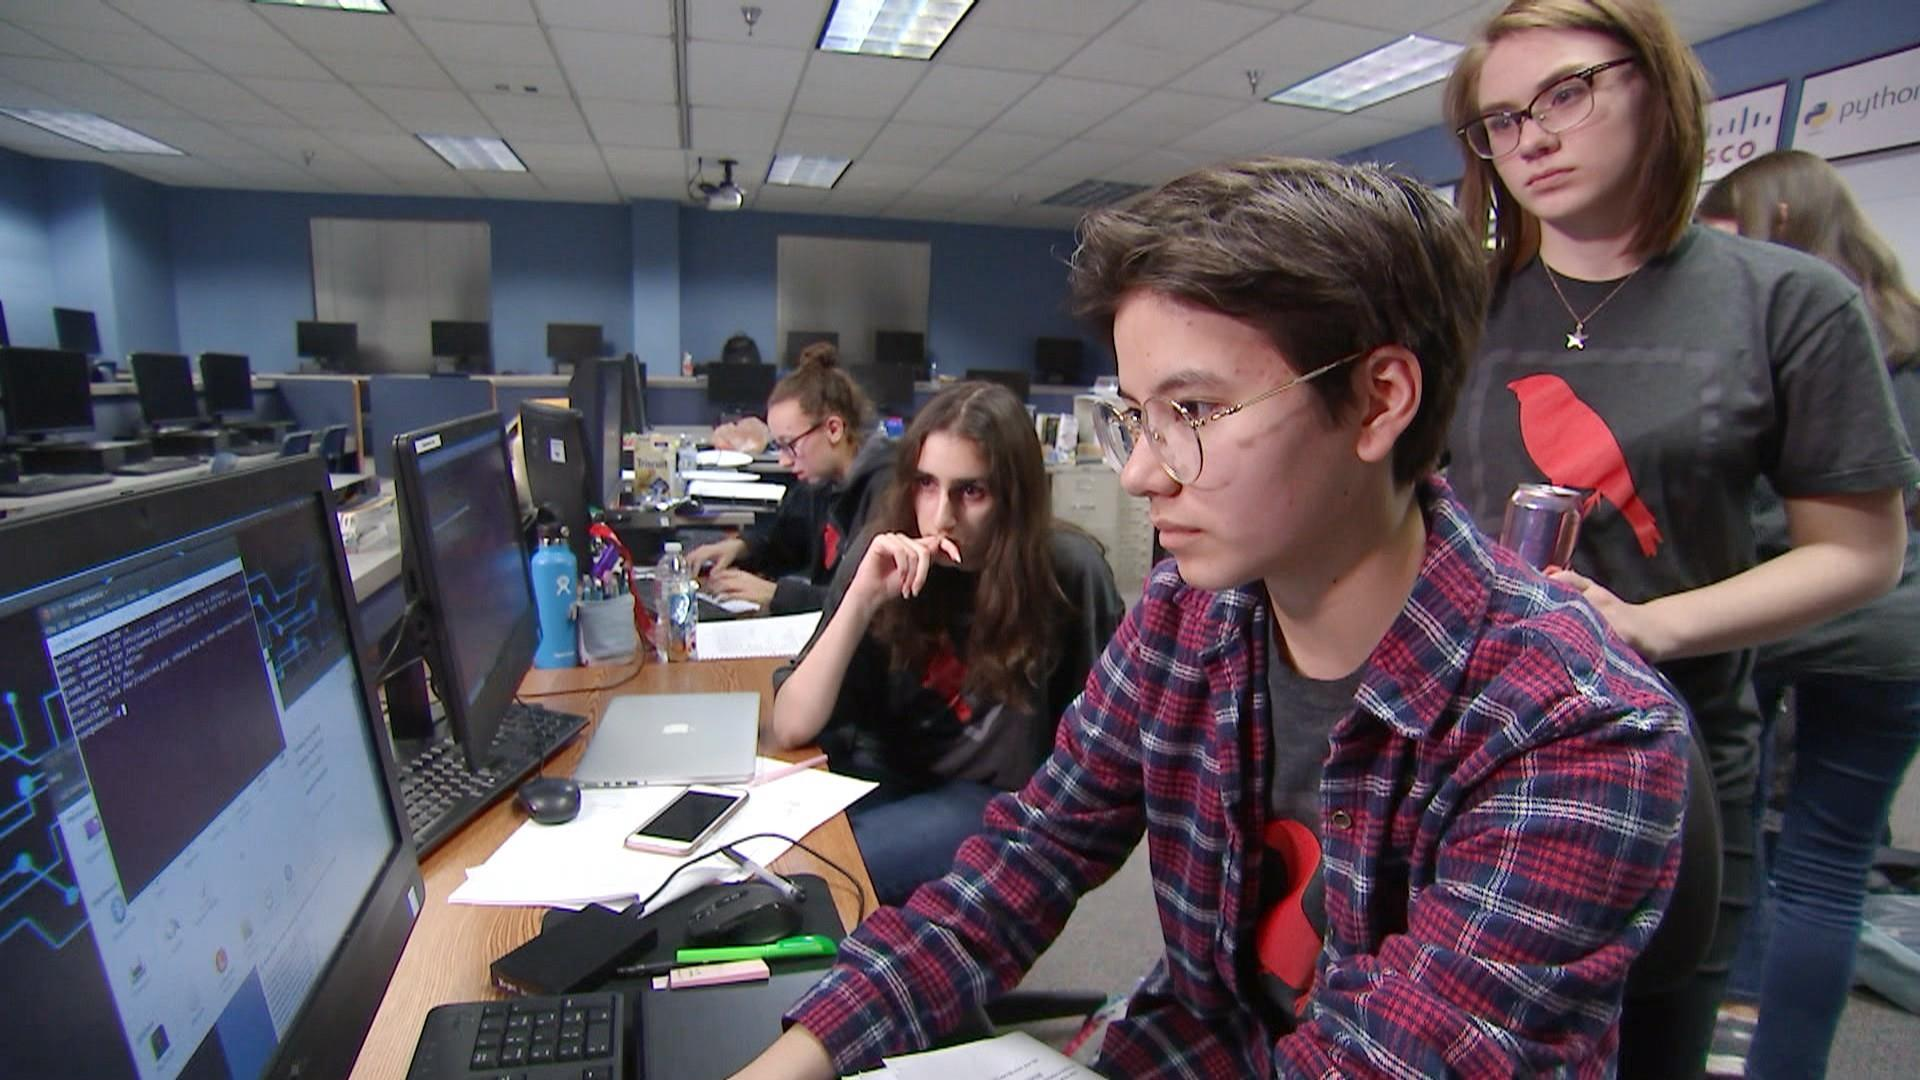 CyberPatriot trains kids to protect America from hackers